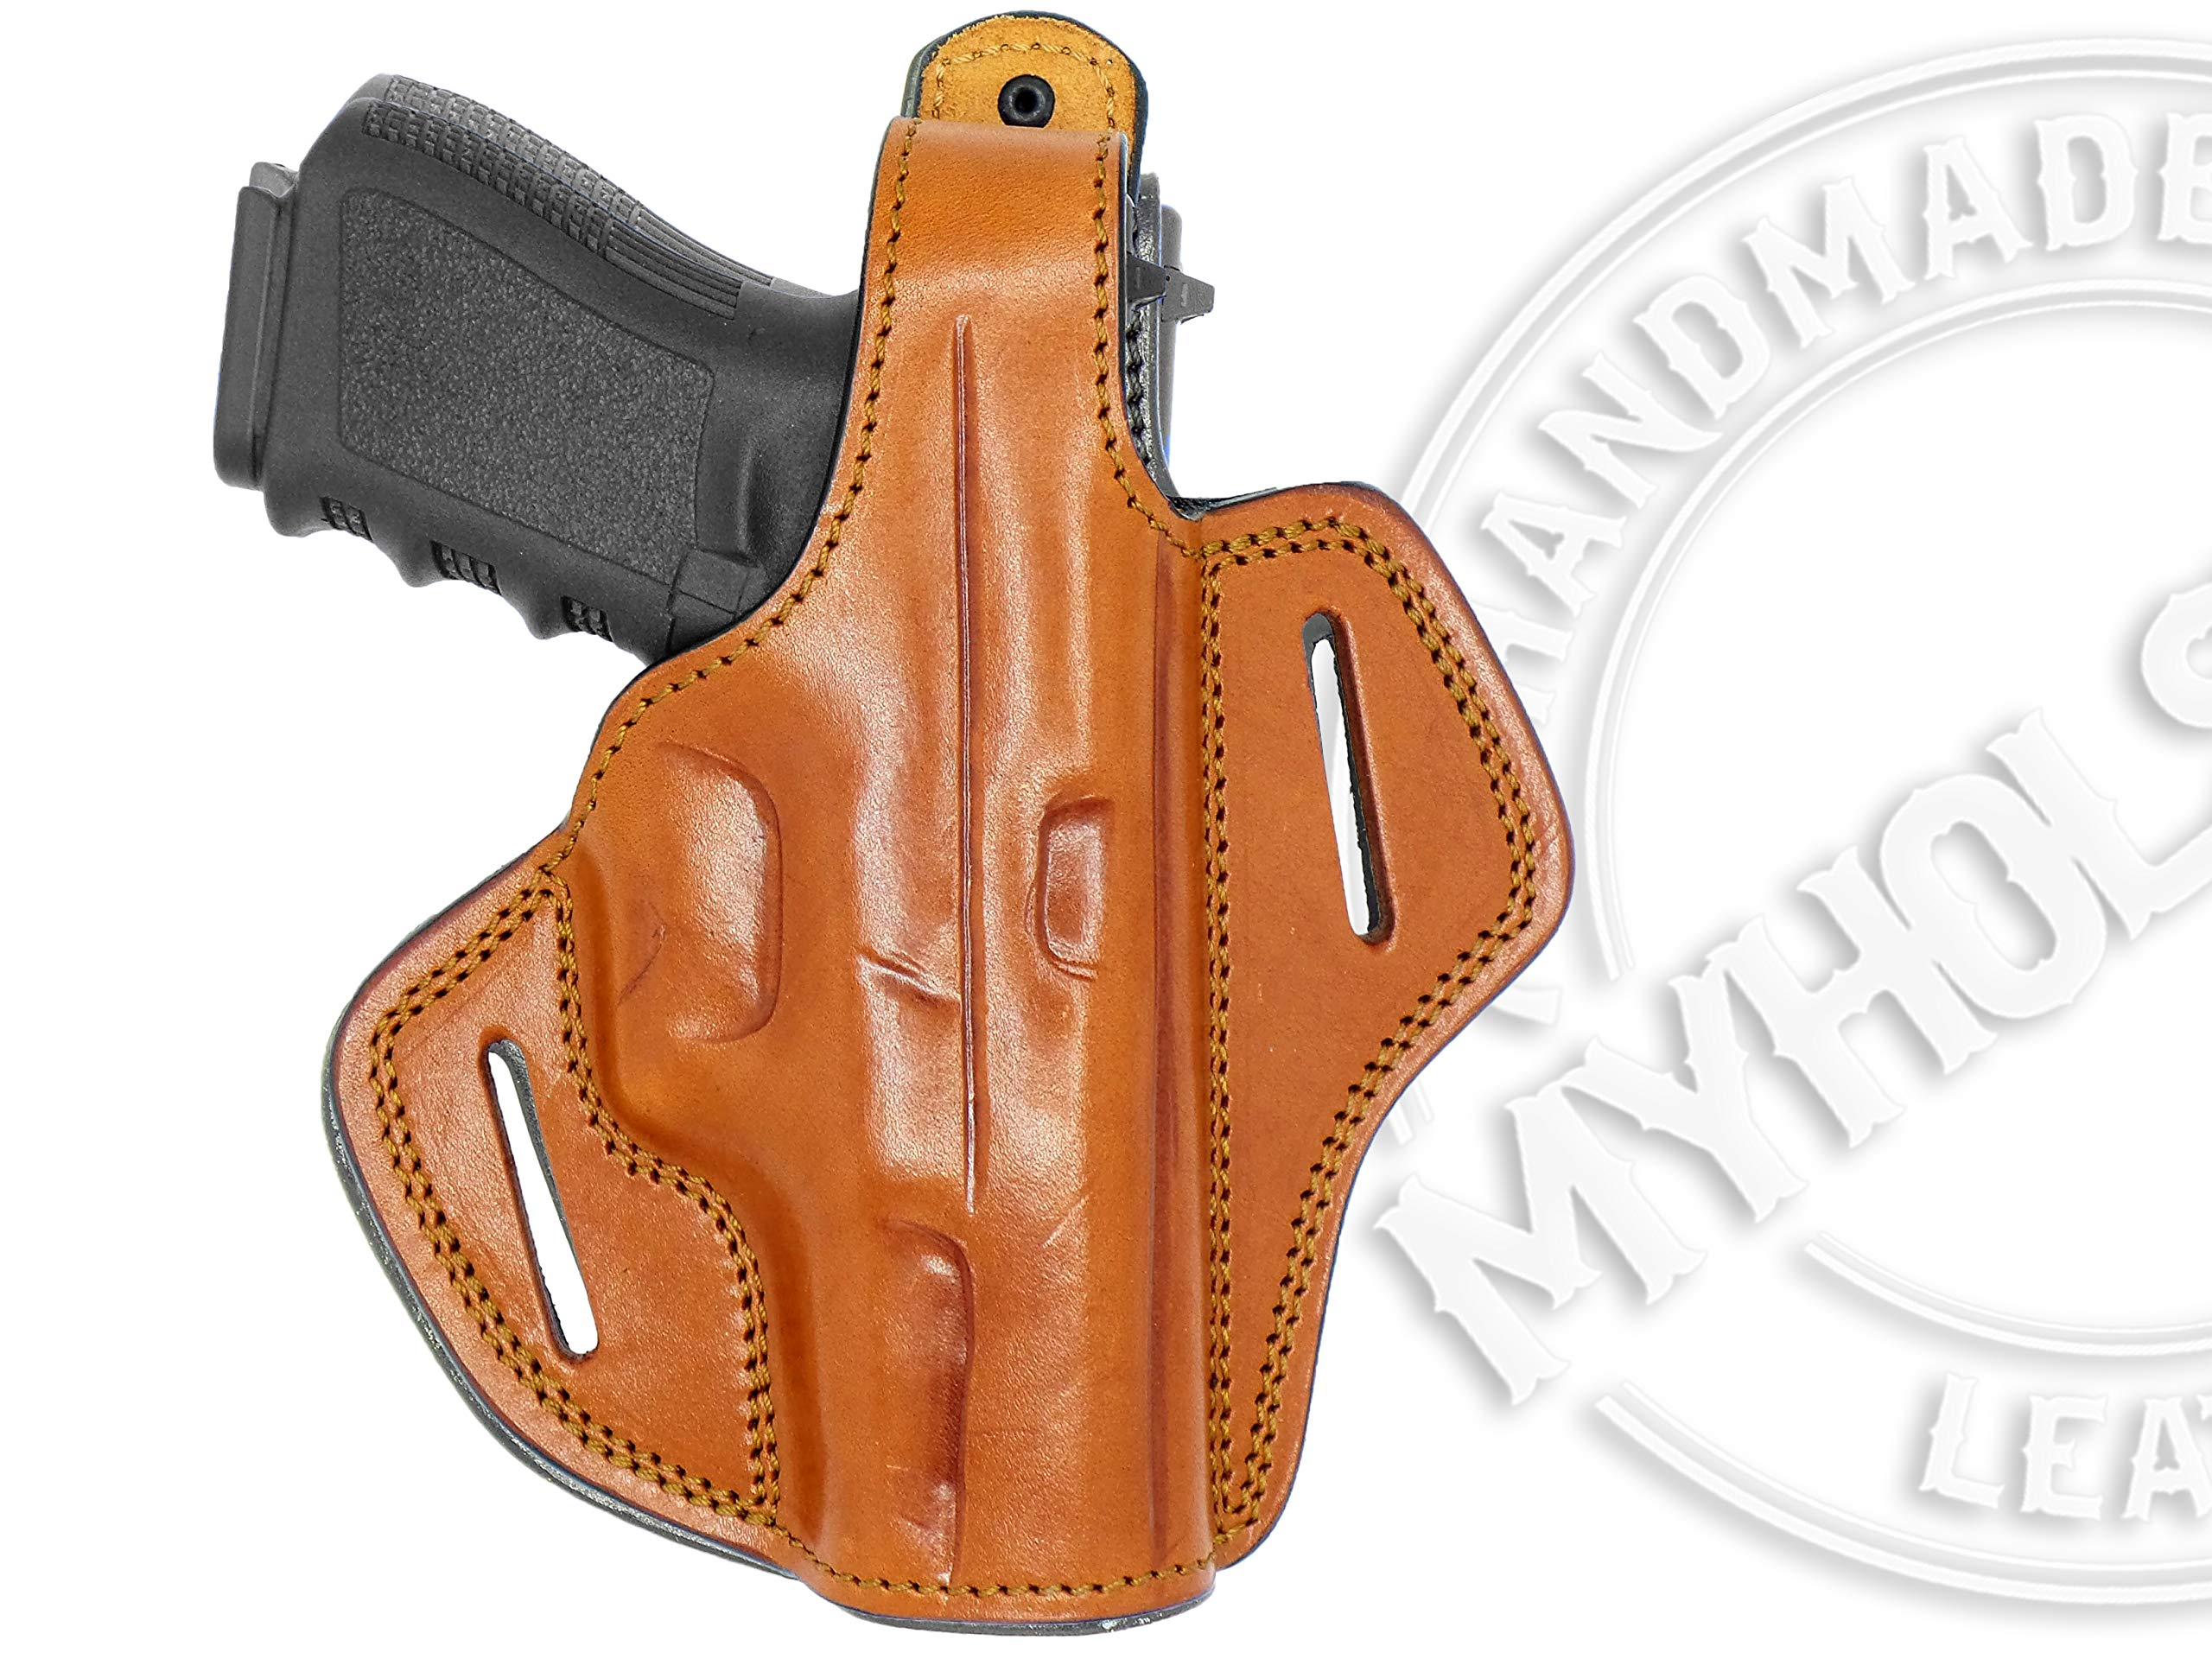 MyHolster Right Hand OWB Leather Gun Holster for Belts fits Smith & Wesson Model 5906 & Similar Frames (Brown) by My Holster